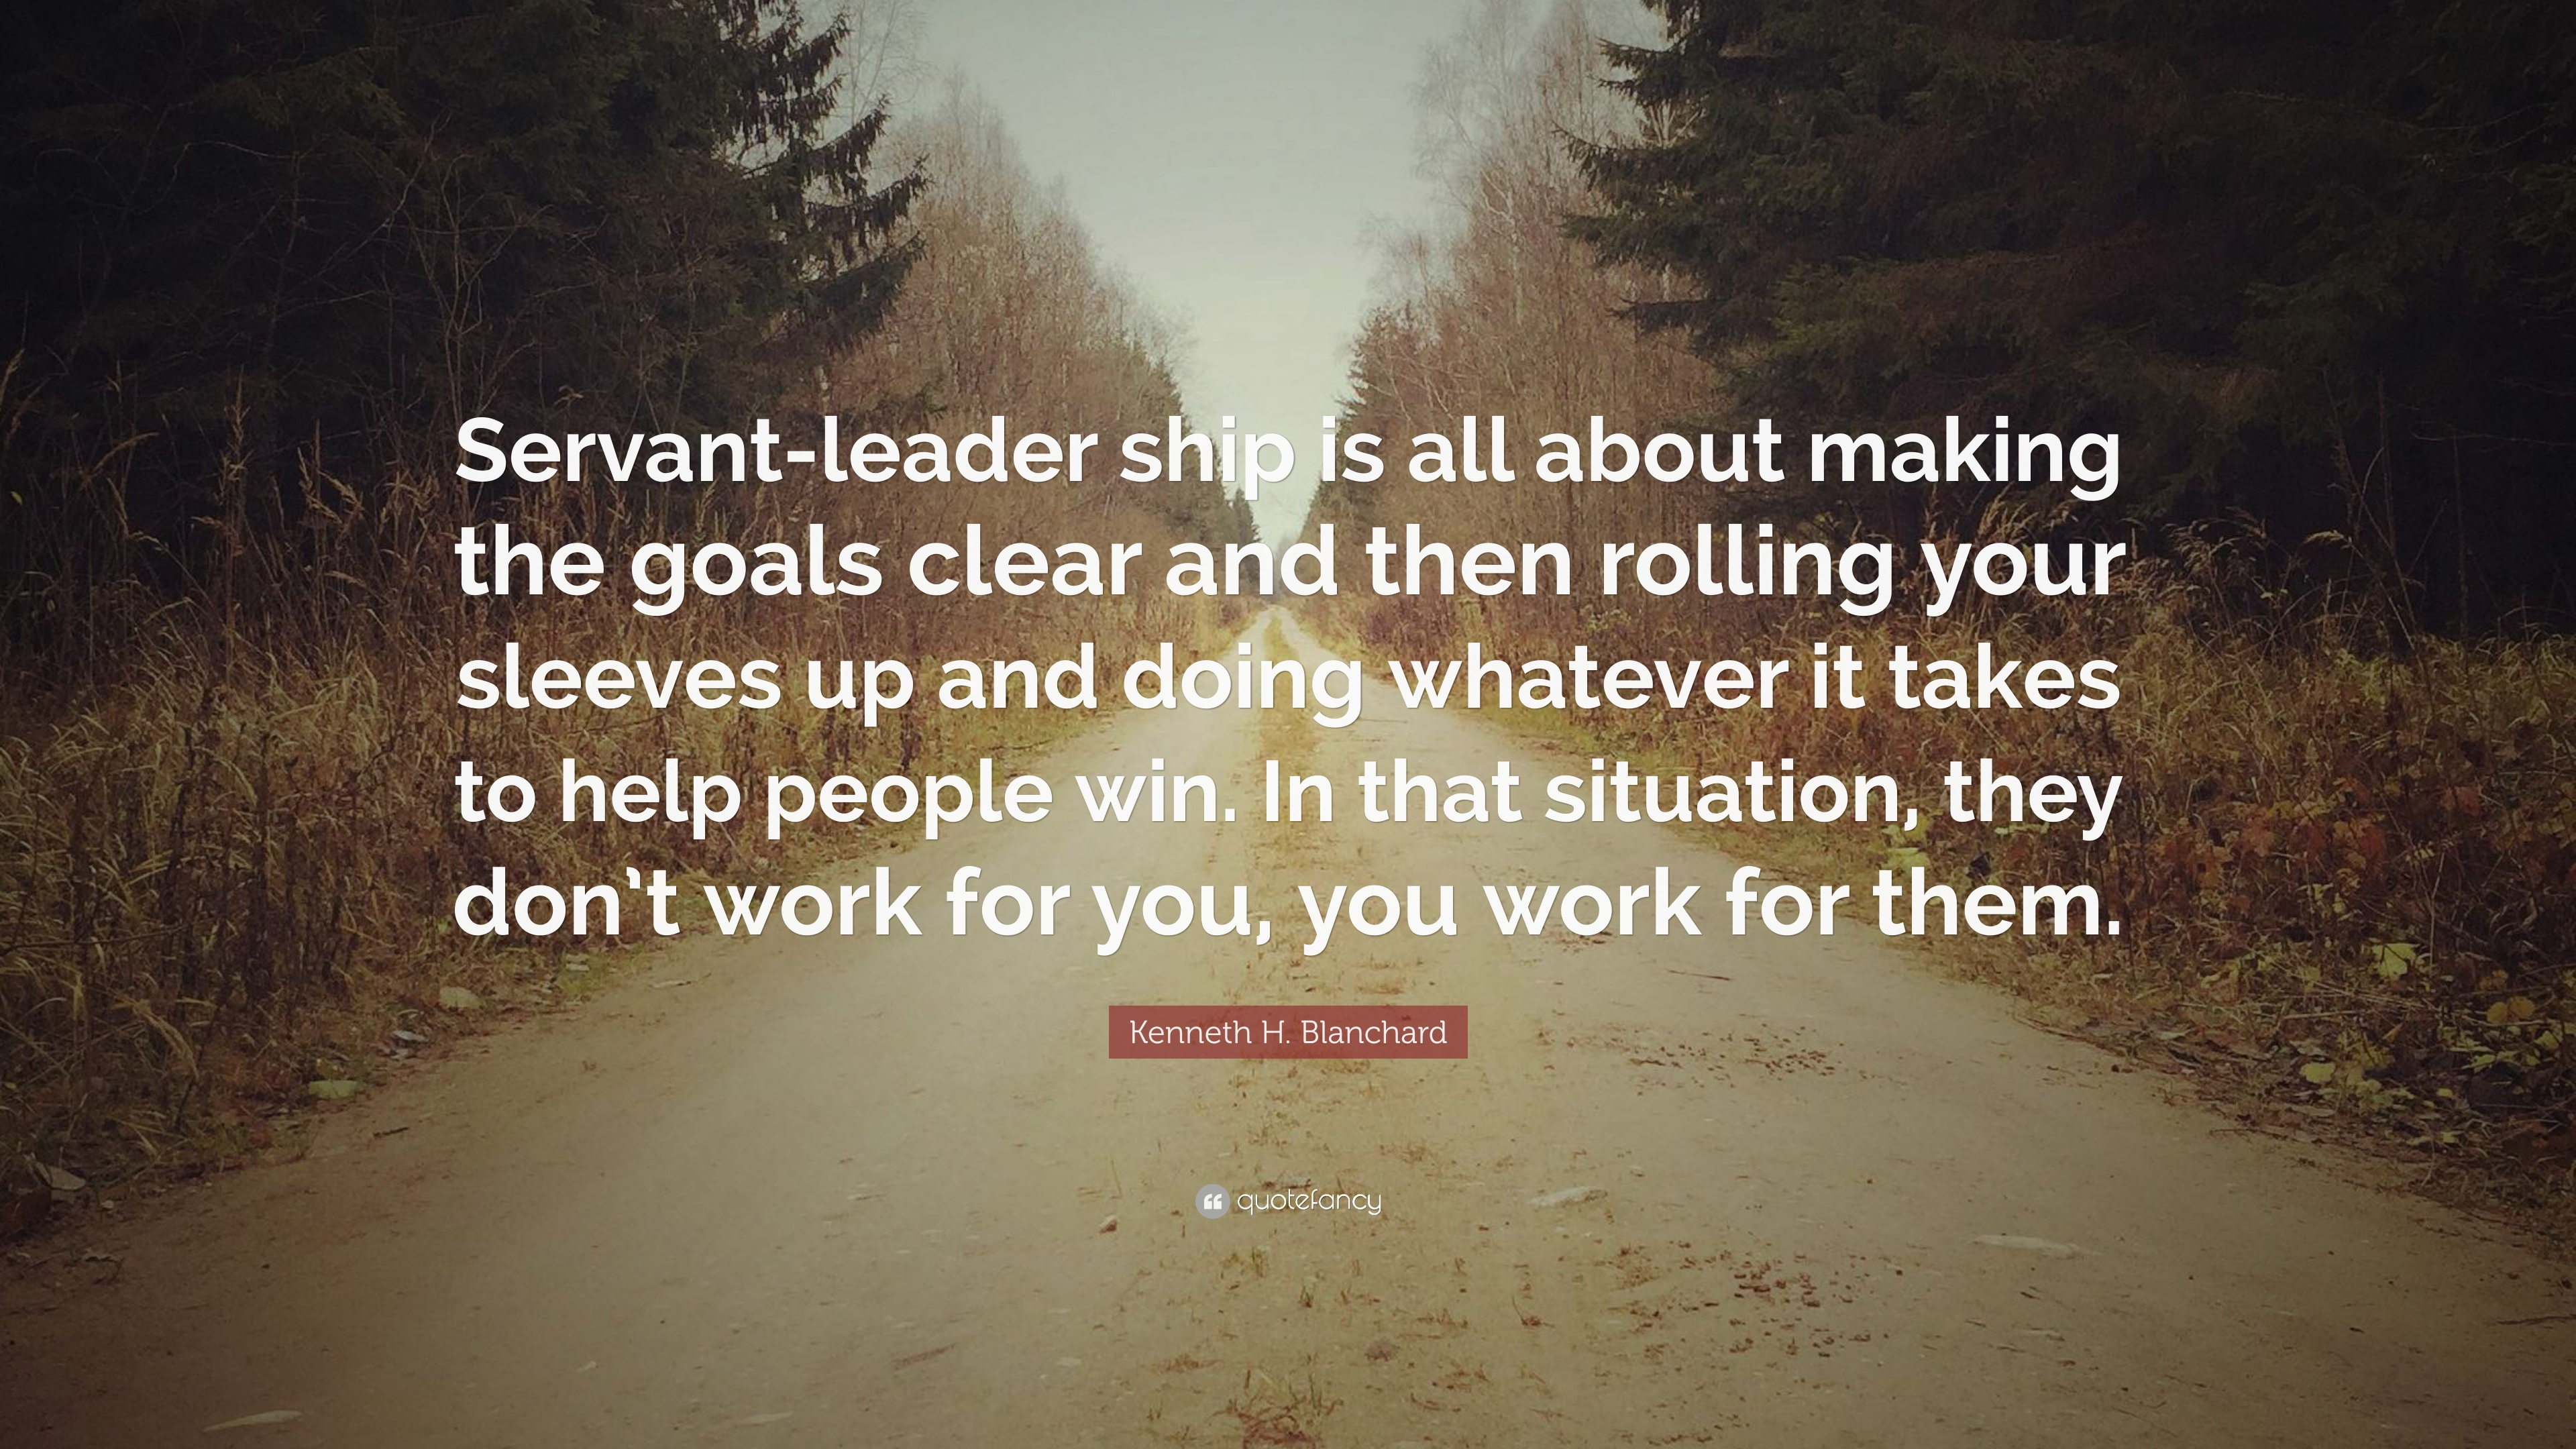 Kenneth H Blanchard Quote Servant Leader Ship Is All About Making The Goals Clear And Then Rolling Your Sleeves Up And Doing Whatever It Takes To 7 Wallpapers Quotefancy